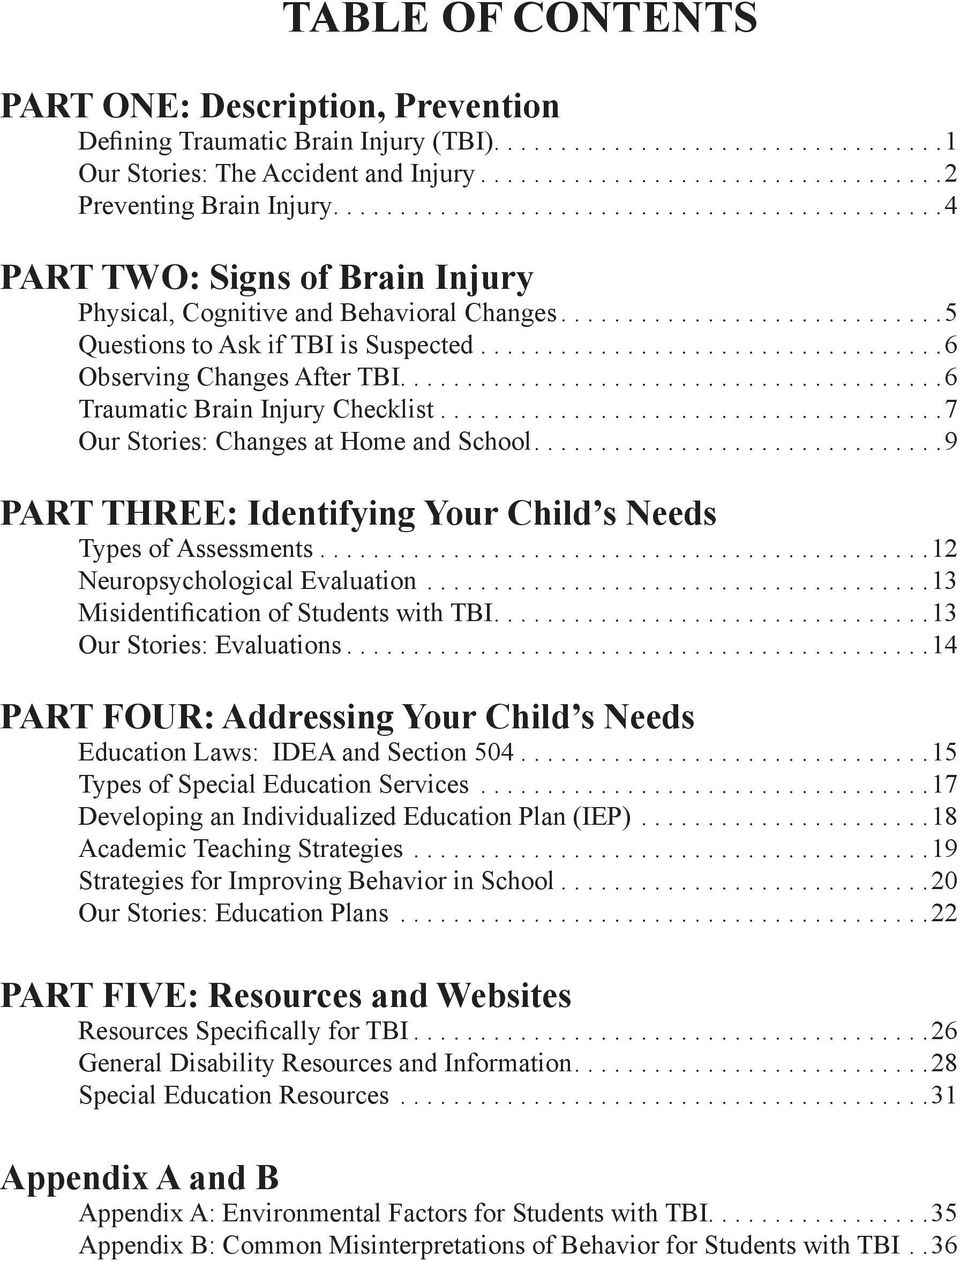 ..7 Our Stories: Changes at Home and School...9 PART THREE: Identifying Your Child s Needs Types of Assessments...12 Neuropsychological Evaluation......................................13 Misidentification of Students with TBI.